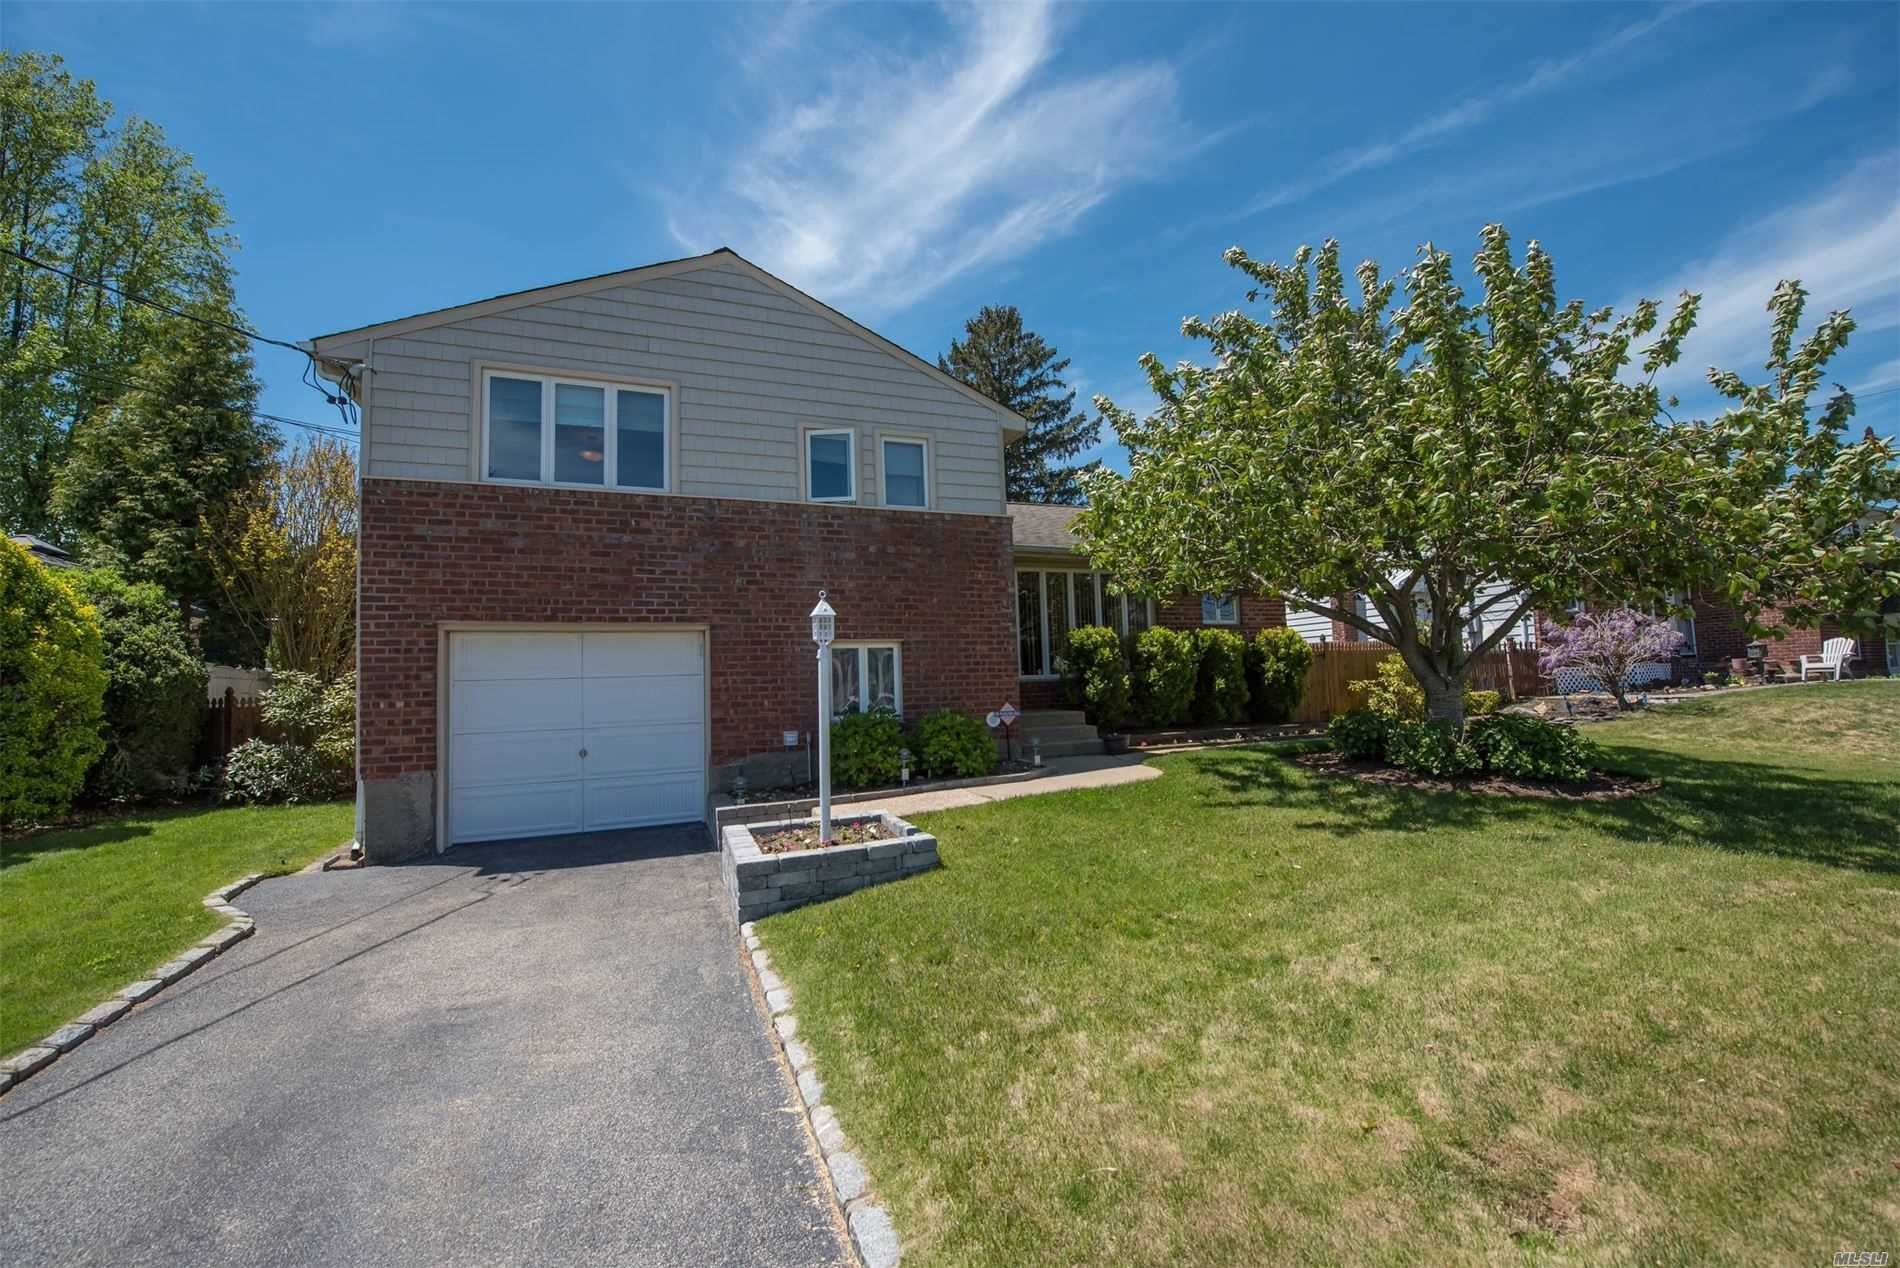 14 Saint Johns Ave, Hicksville, NY 11801 - MLS#: 3217216